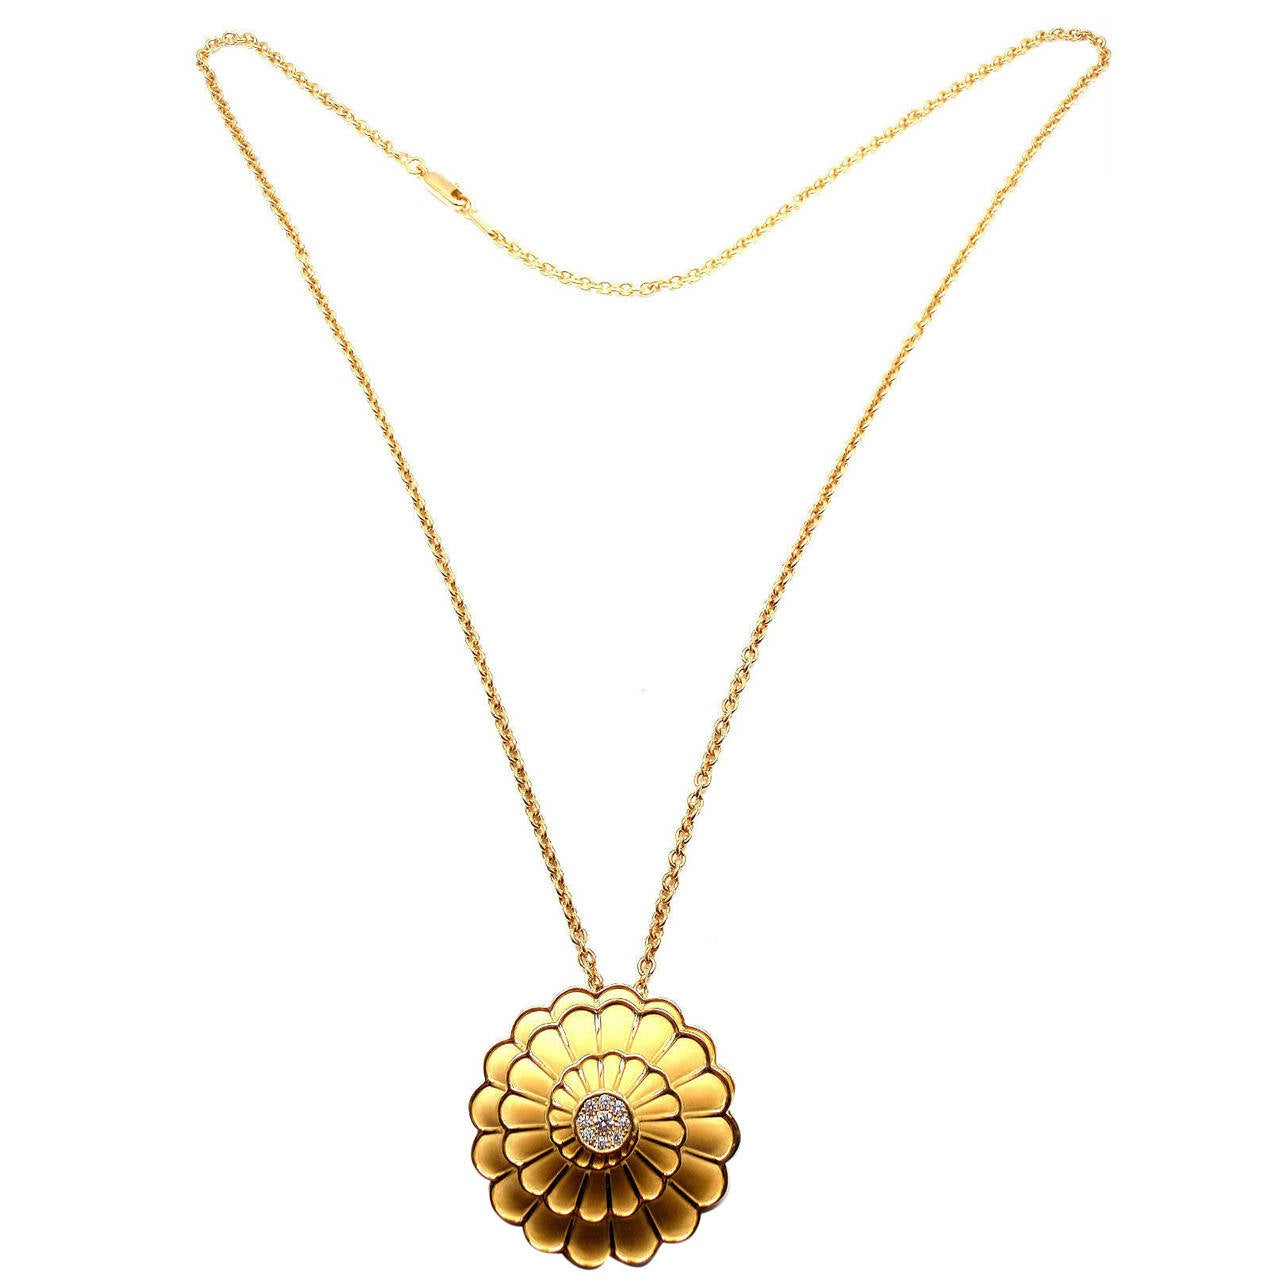 Carrera Y Carrera Afrodita Diamond Gold Necklace 1